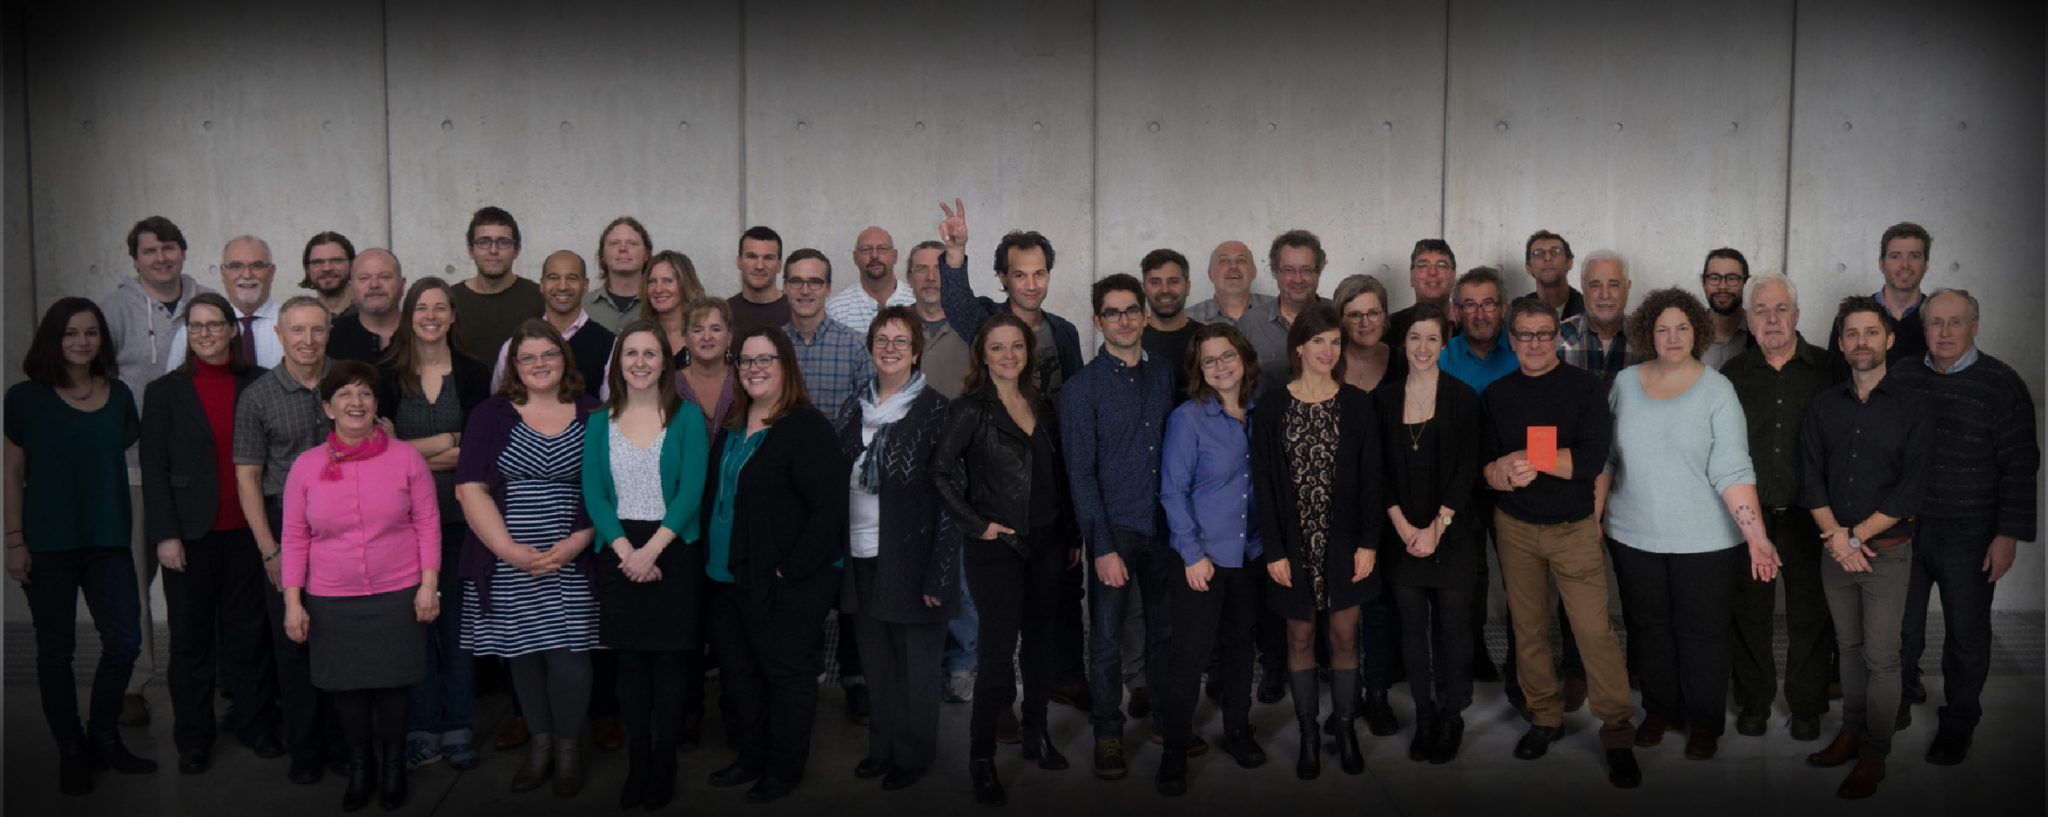 La Ruelle Films Team - Library and Archives Canada